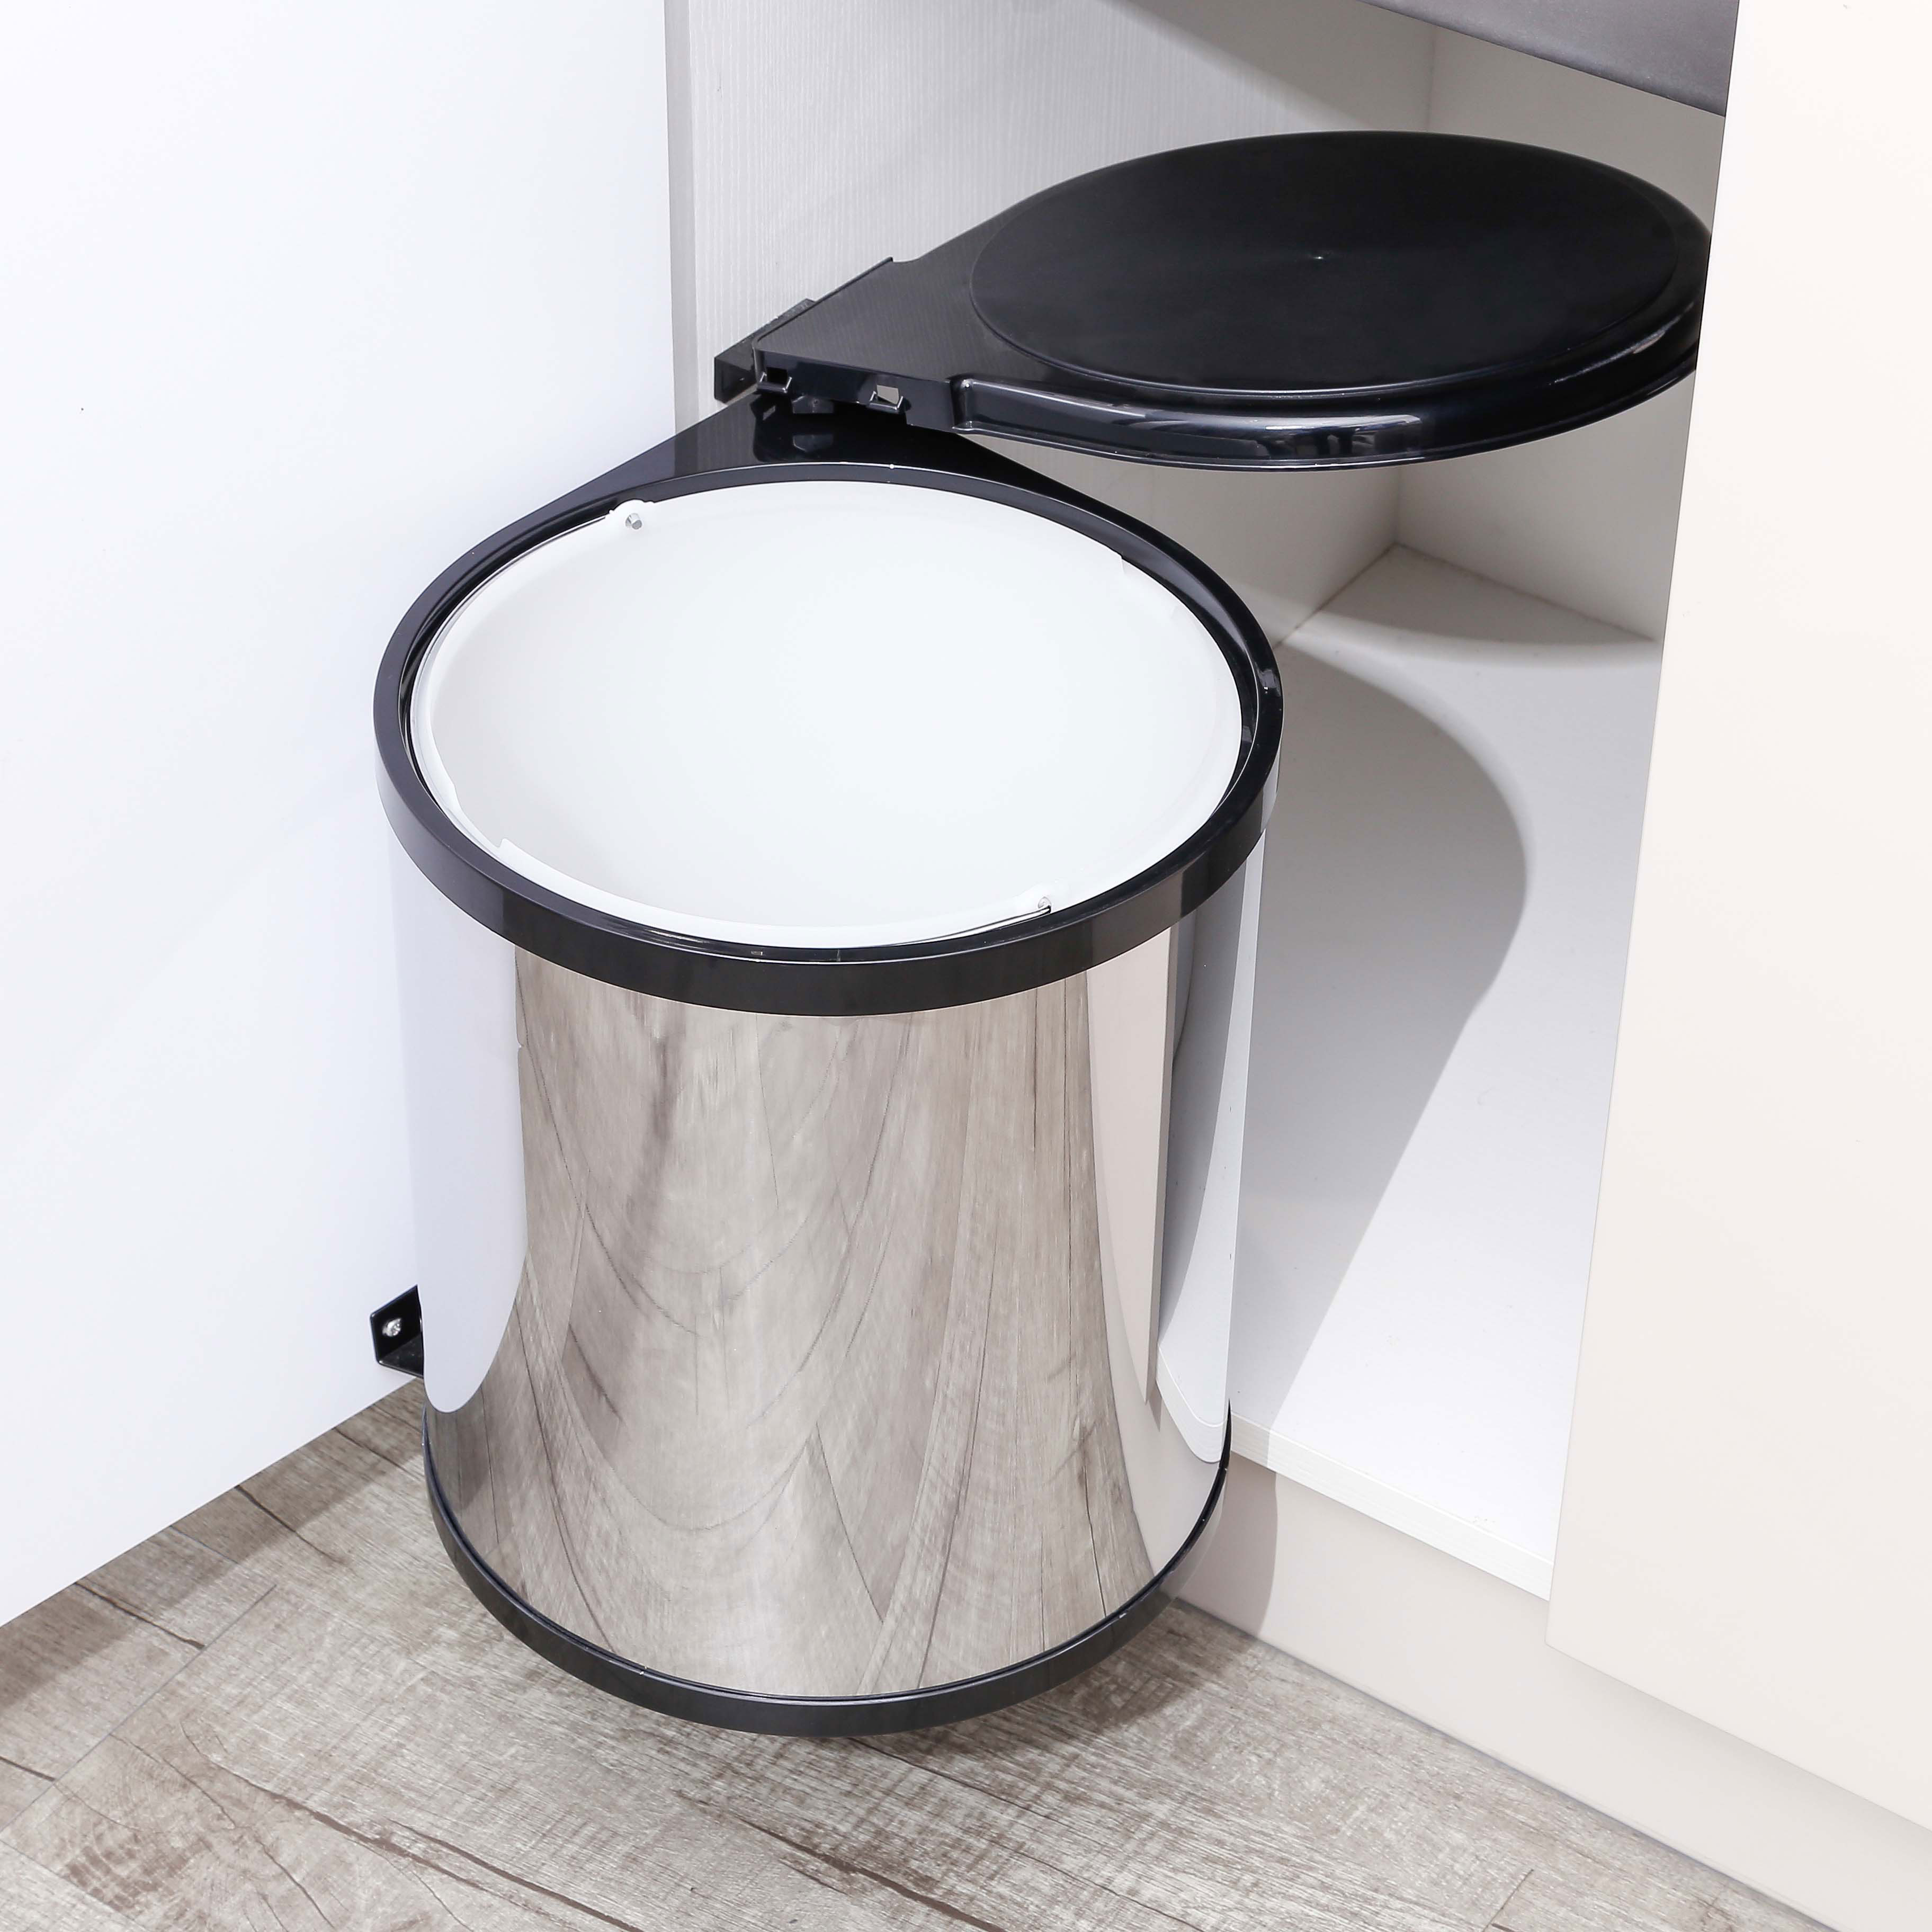 Kitchen Under Sink Trash Can Lid Pivot Pull Out Waste Container Buy Sink Trash Can Pull Out Waste Container Stainless Steel Under Sink Trash Can Product On Alibaba Com